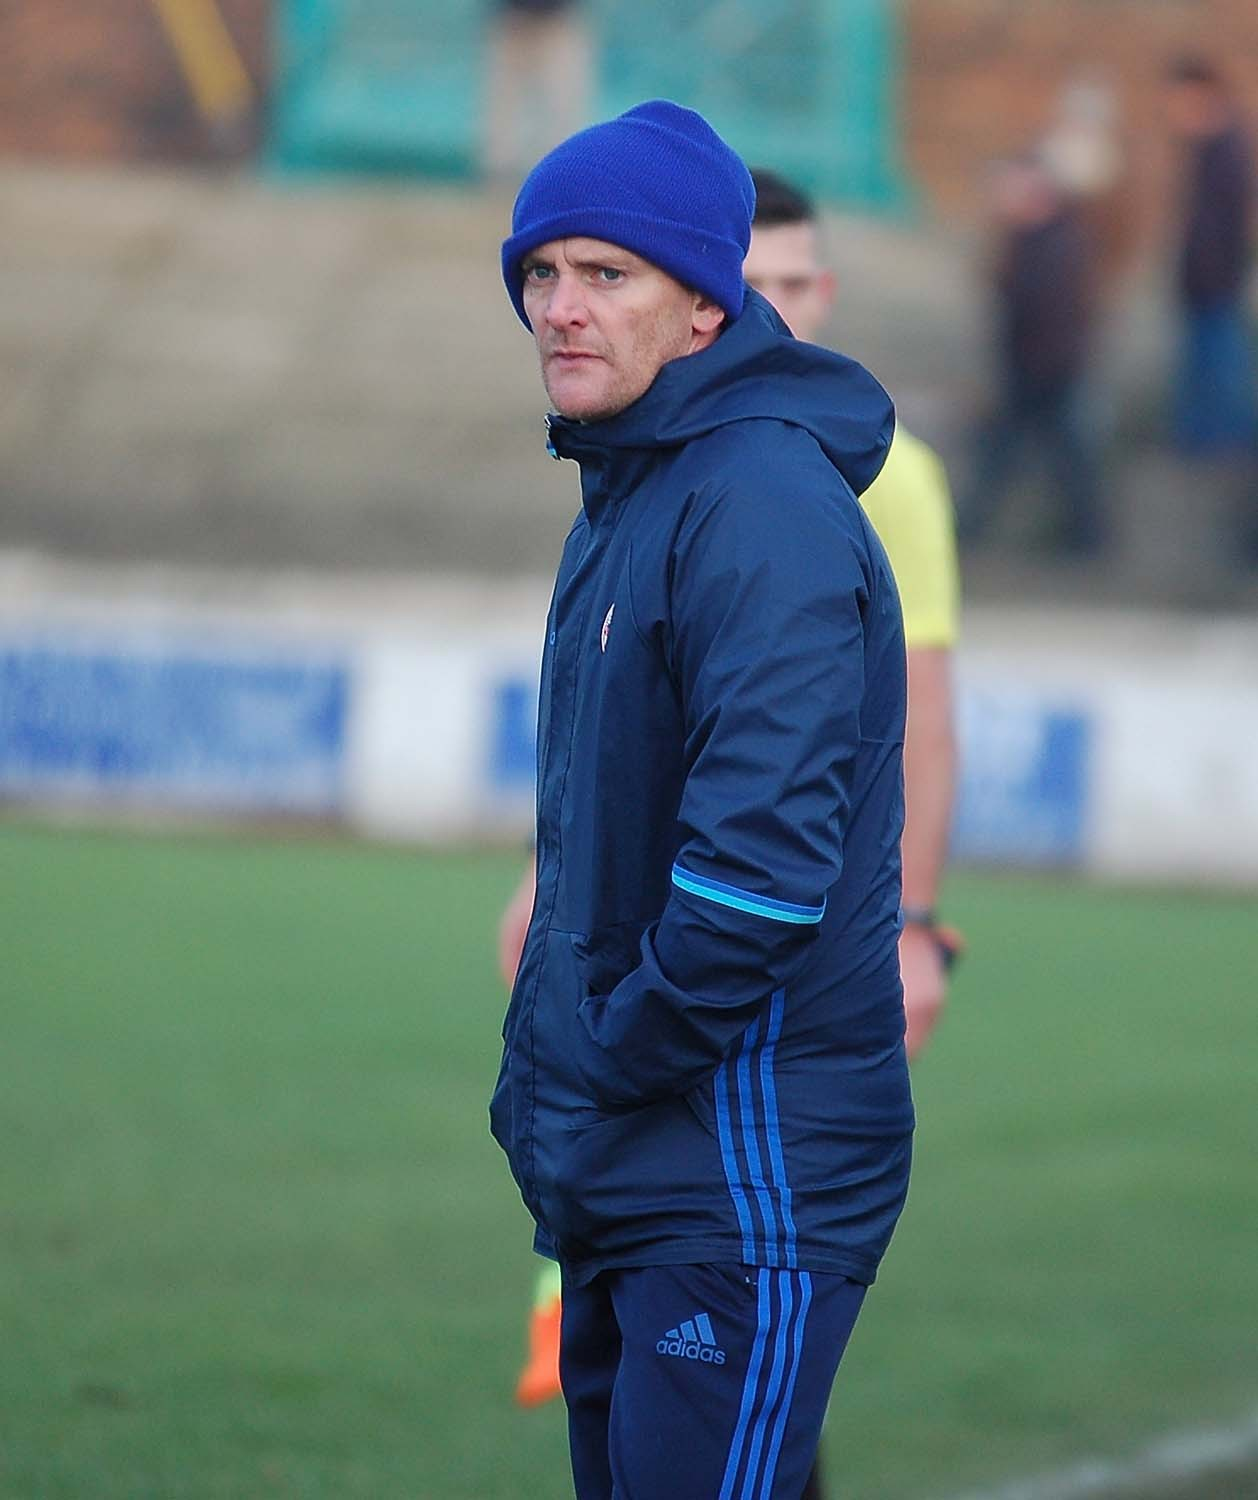 CUP DESPAIR: Buffs boss Chris Stran looks on at Newtown Park as his side suffer defeat in the national competition.